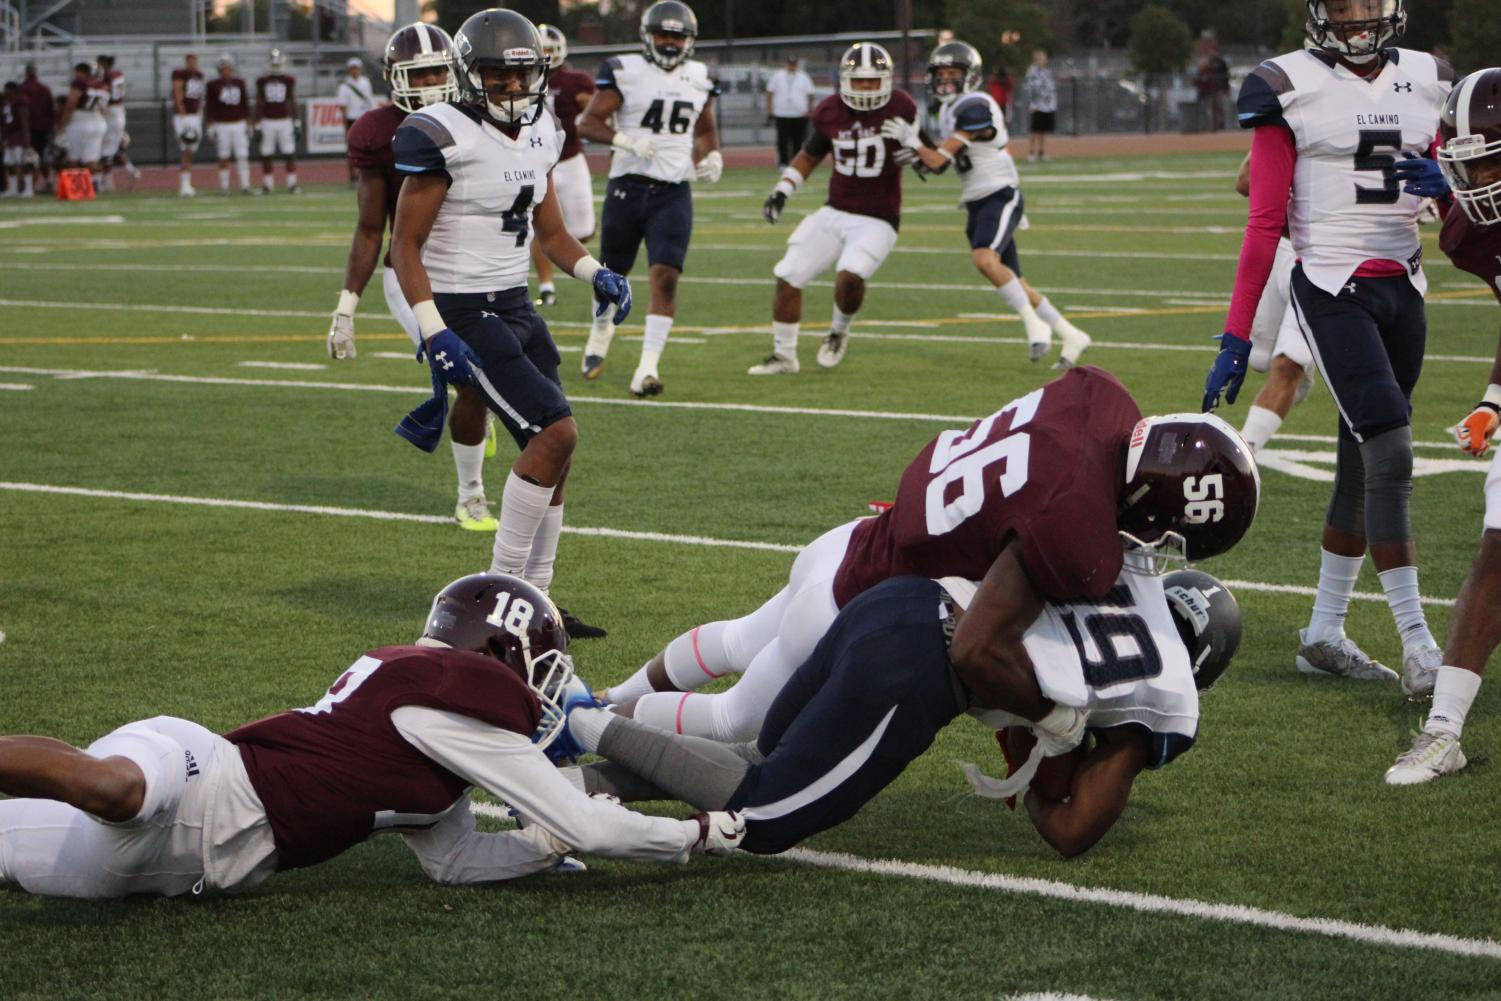 EC running back Kishawn Berry (No. 19) is tackled by Mt. SAC linebacker Jordan Otey-Wilson (No. 56)  in a loss to the Mounties.